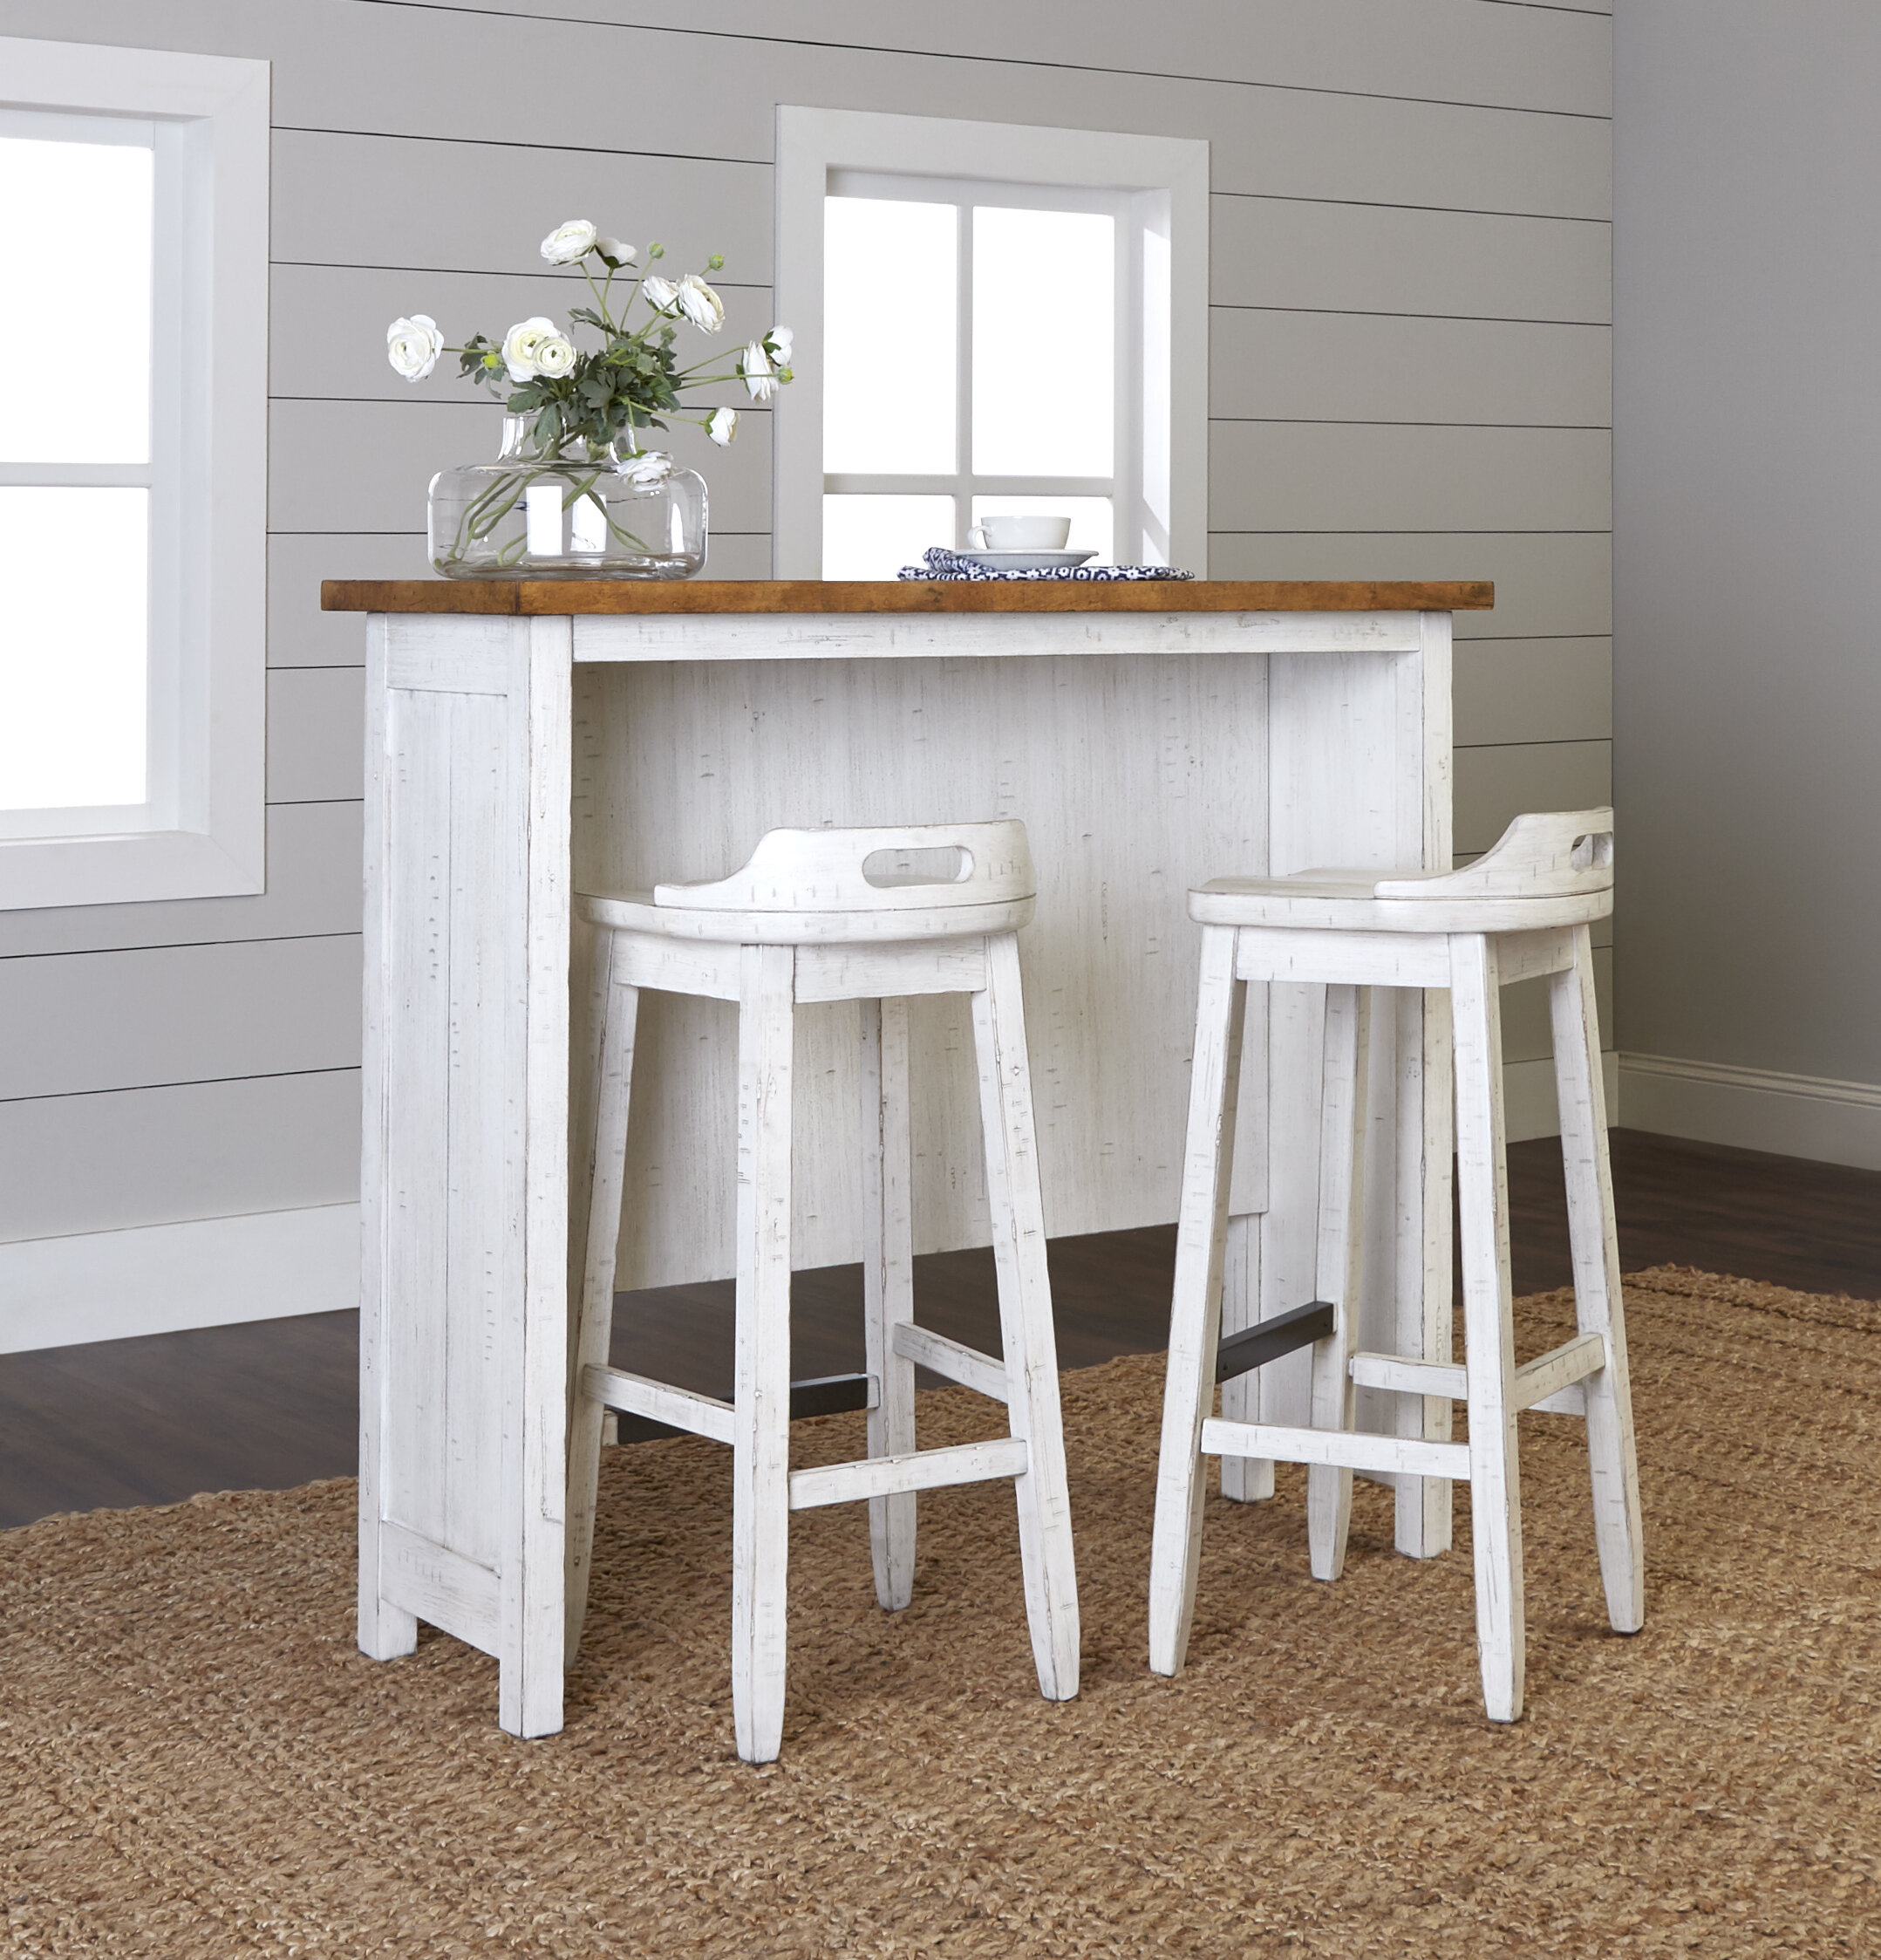 Trisha Yearwood Home Collection Trisha Yearwood Home Country Line Bar Kitchen Island Reviews Wayfair Ca